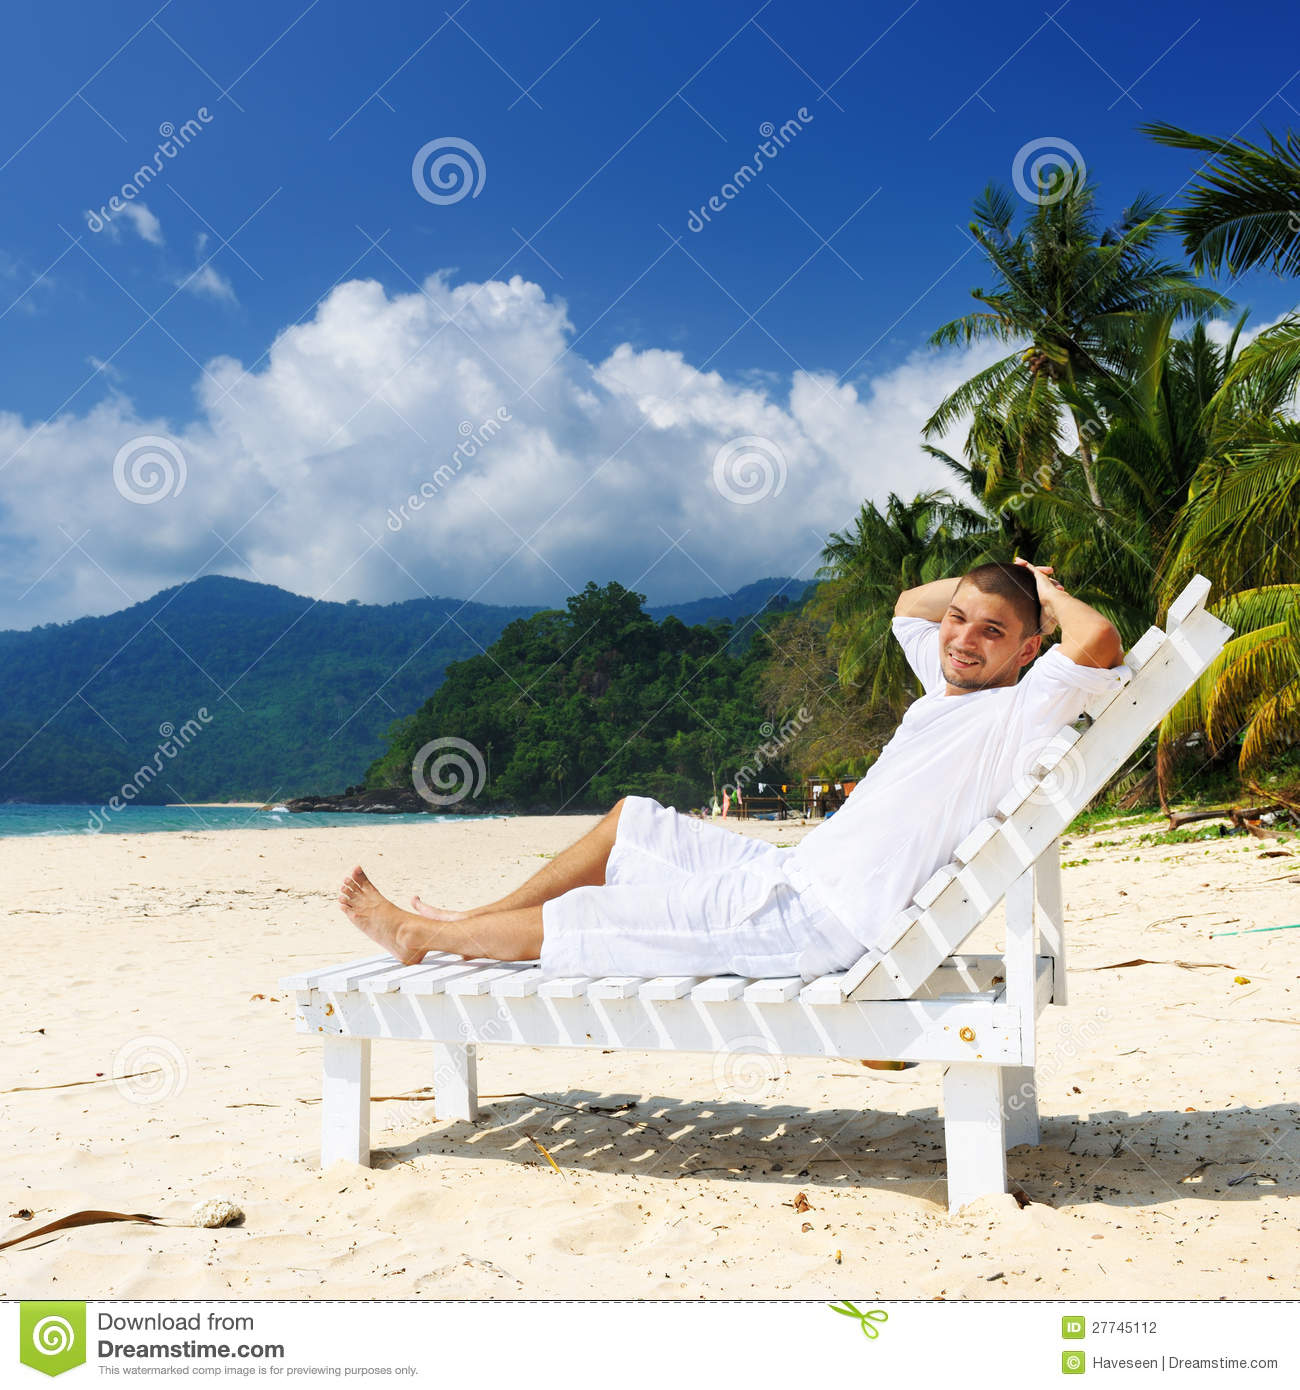 Man Relaxing On A Beach Stock Photo. Image Of Blue